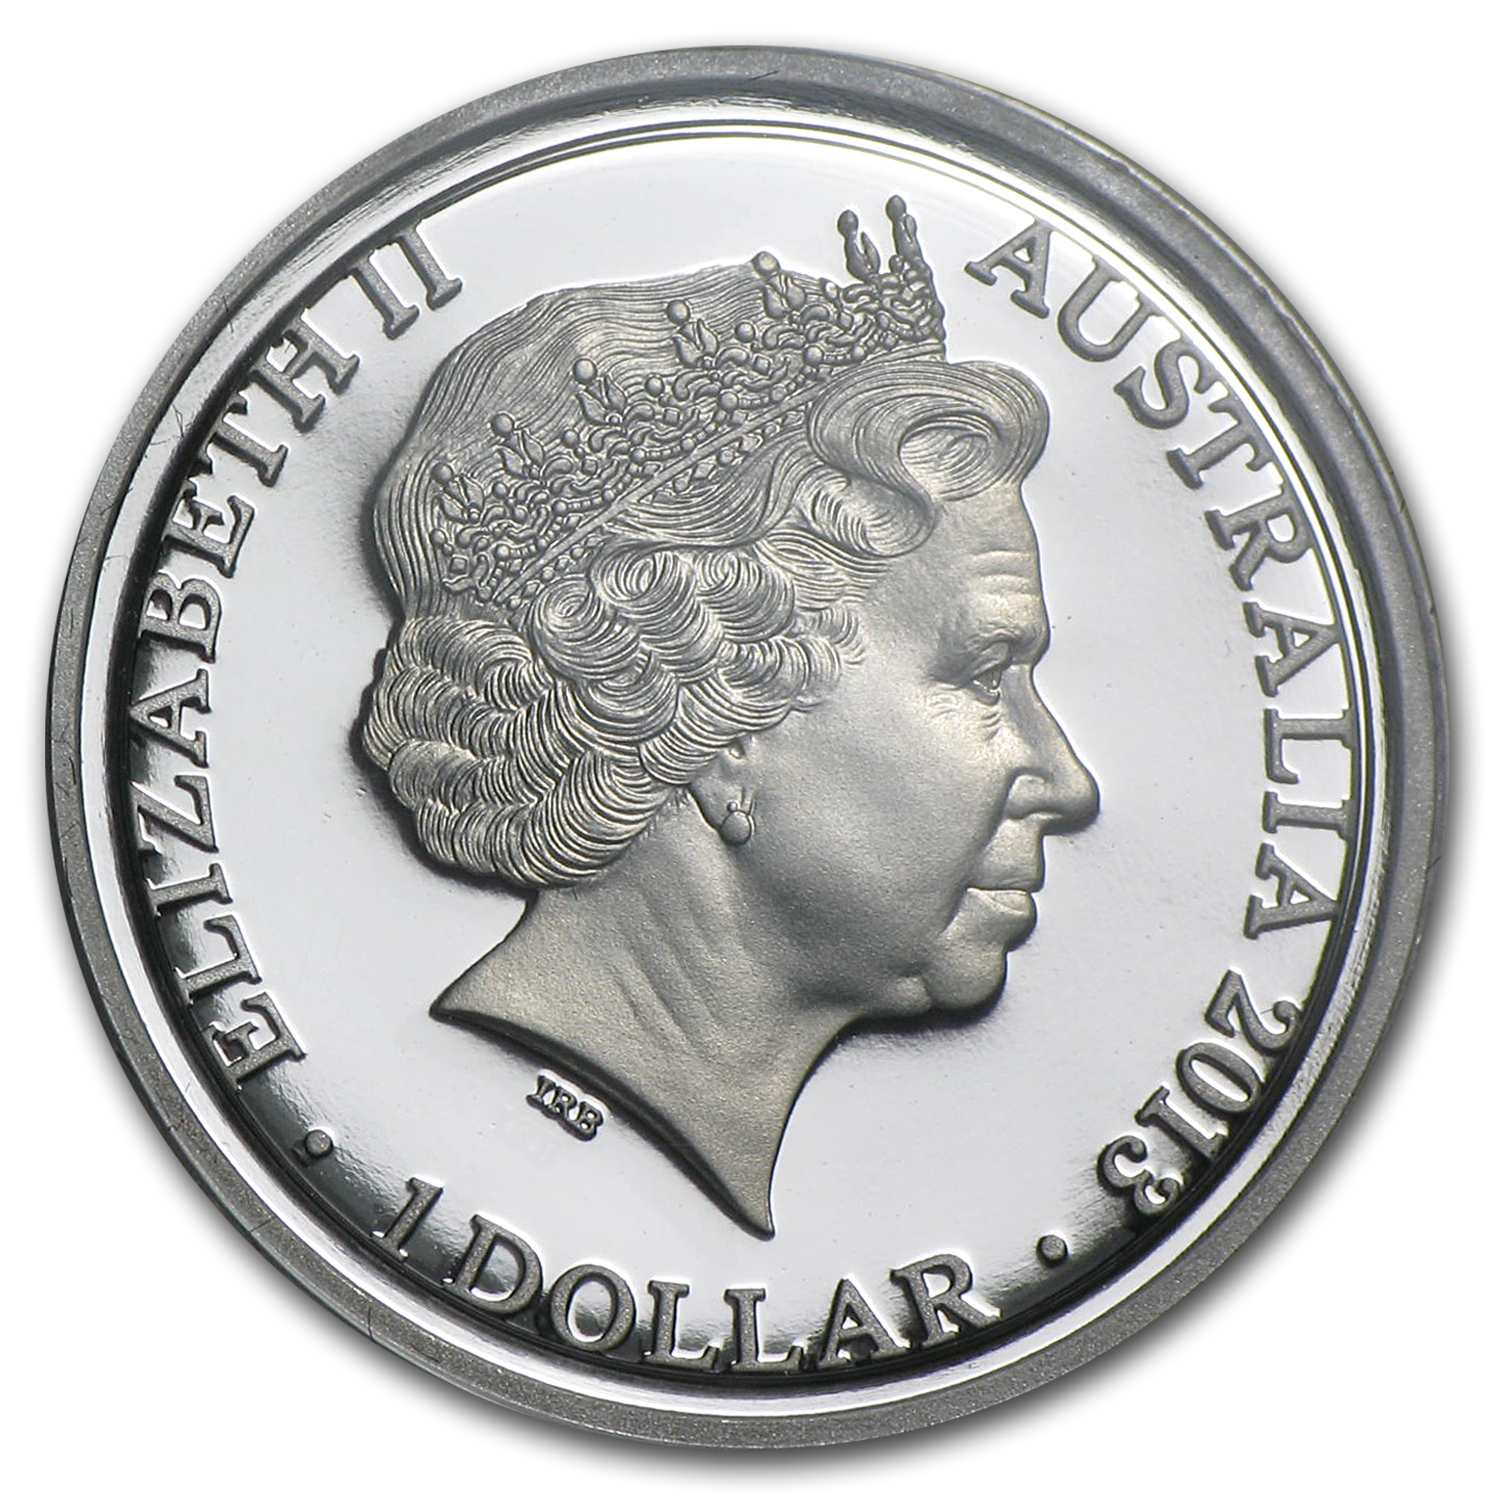 2013 Australia Silver $1 Kangaroo at Sunset